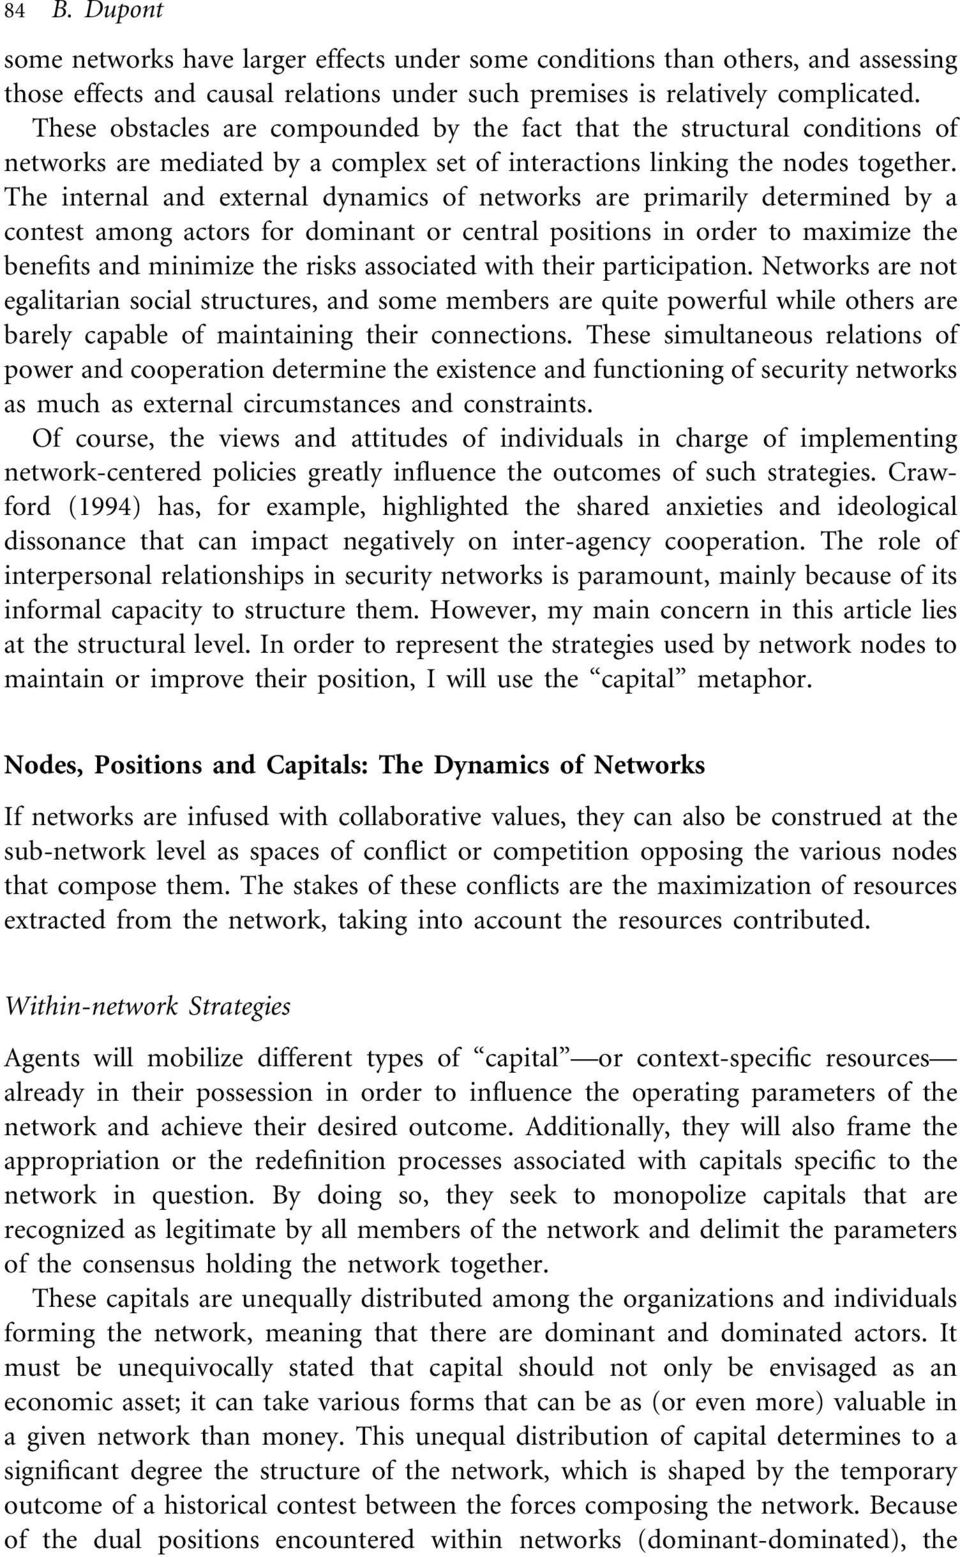 The internal and external dynamics of networks are primarily determined by a contest among actors for dominant or central positions in order to maximize the benefits and minimize the risks associated